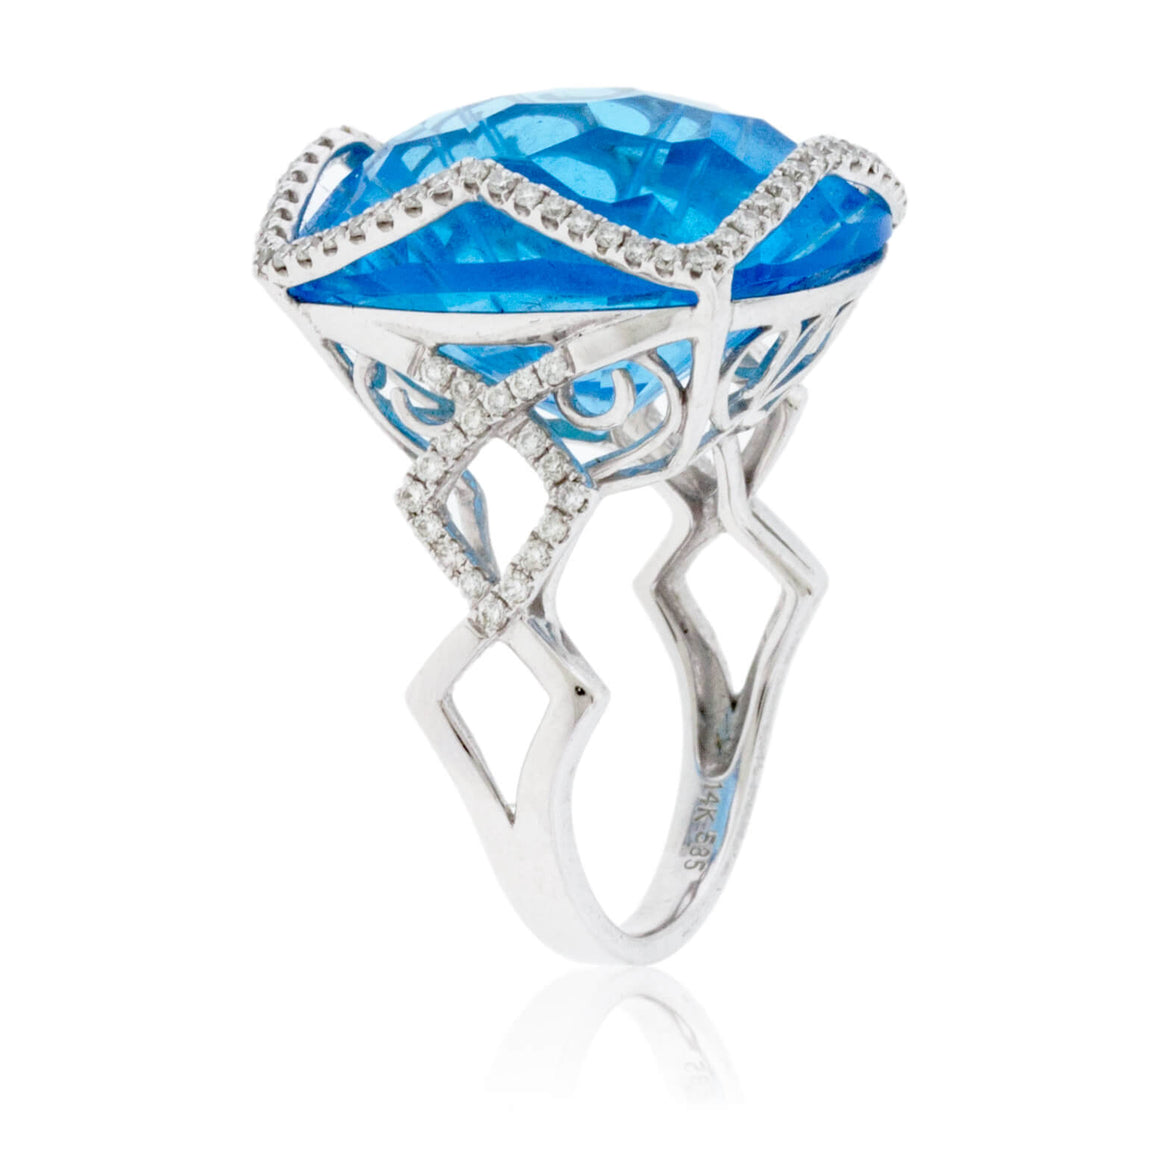 Fancy Cut Blue Topaz with Diamond Accents Ring